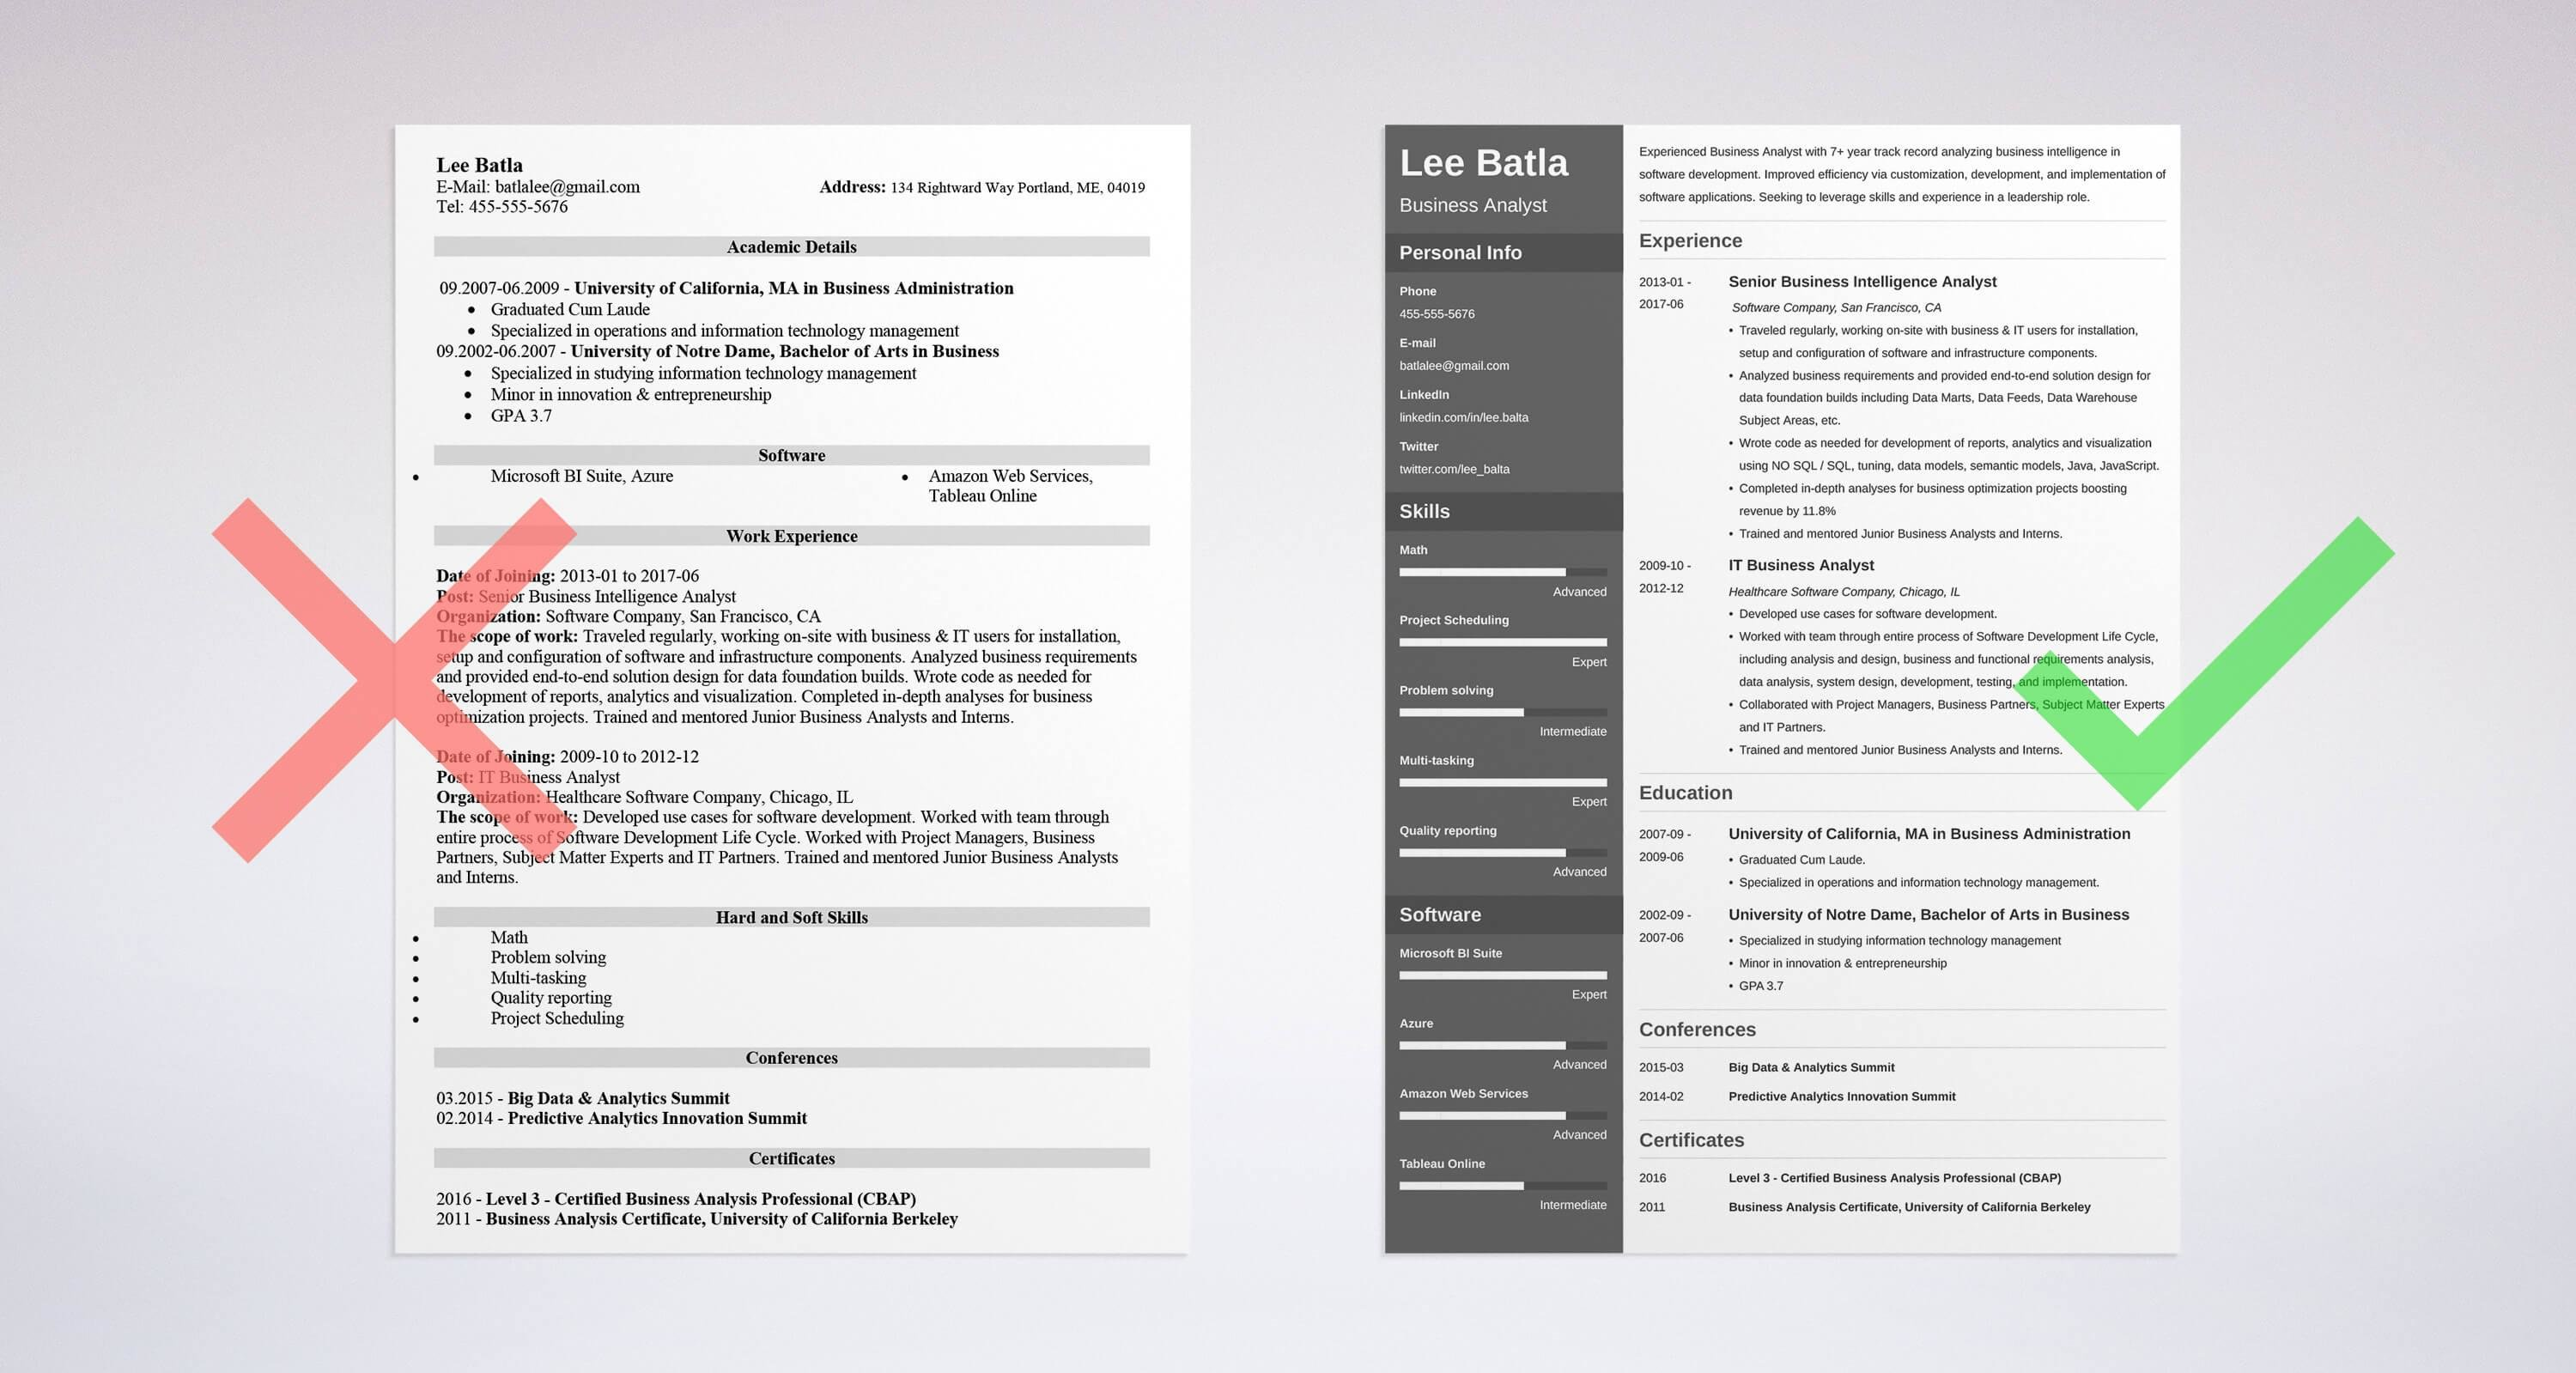 Business Analyst Resume: Sample U0026 Complete Guide [+20 Examples]